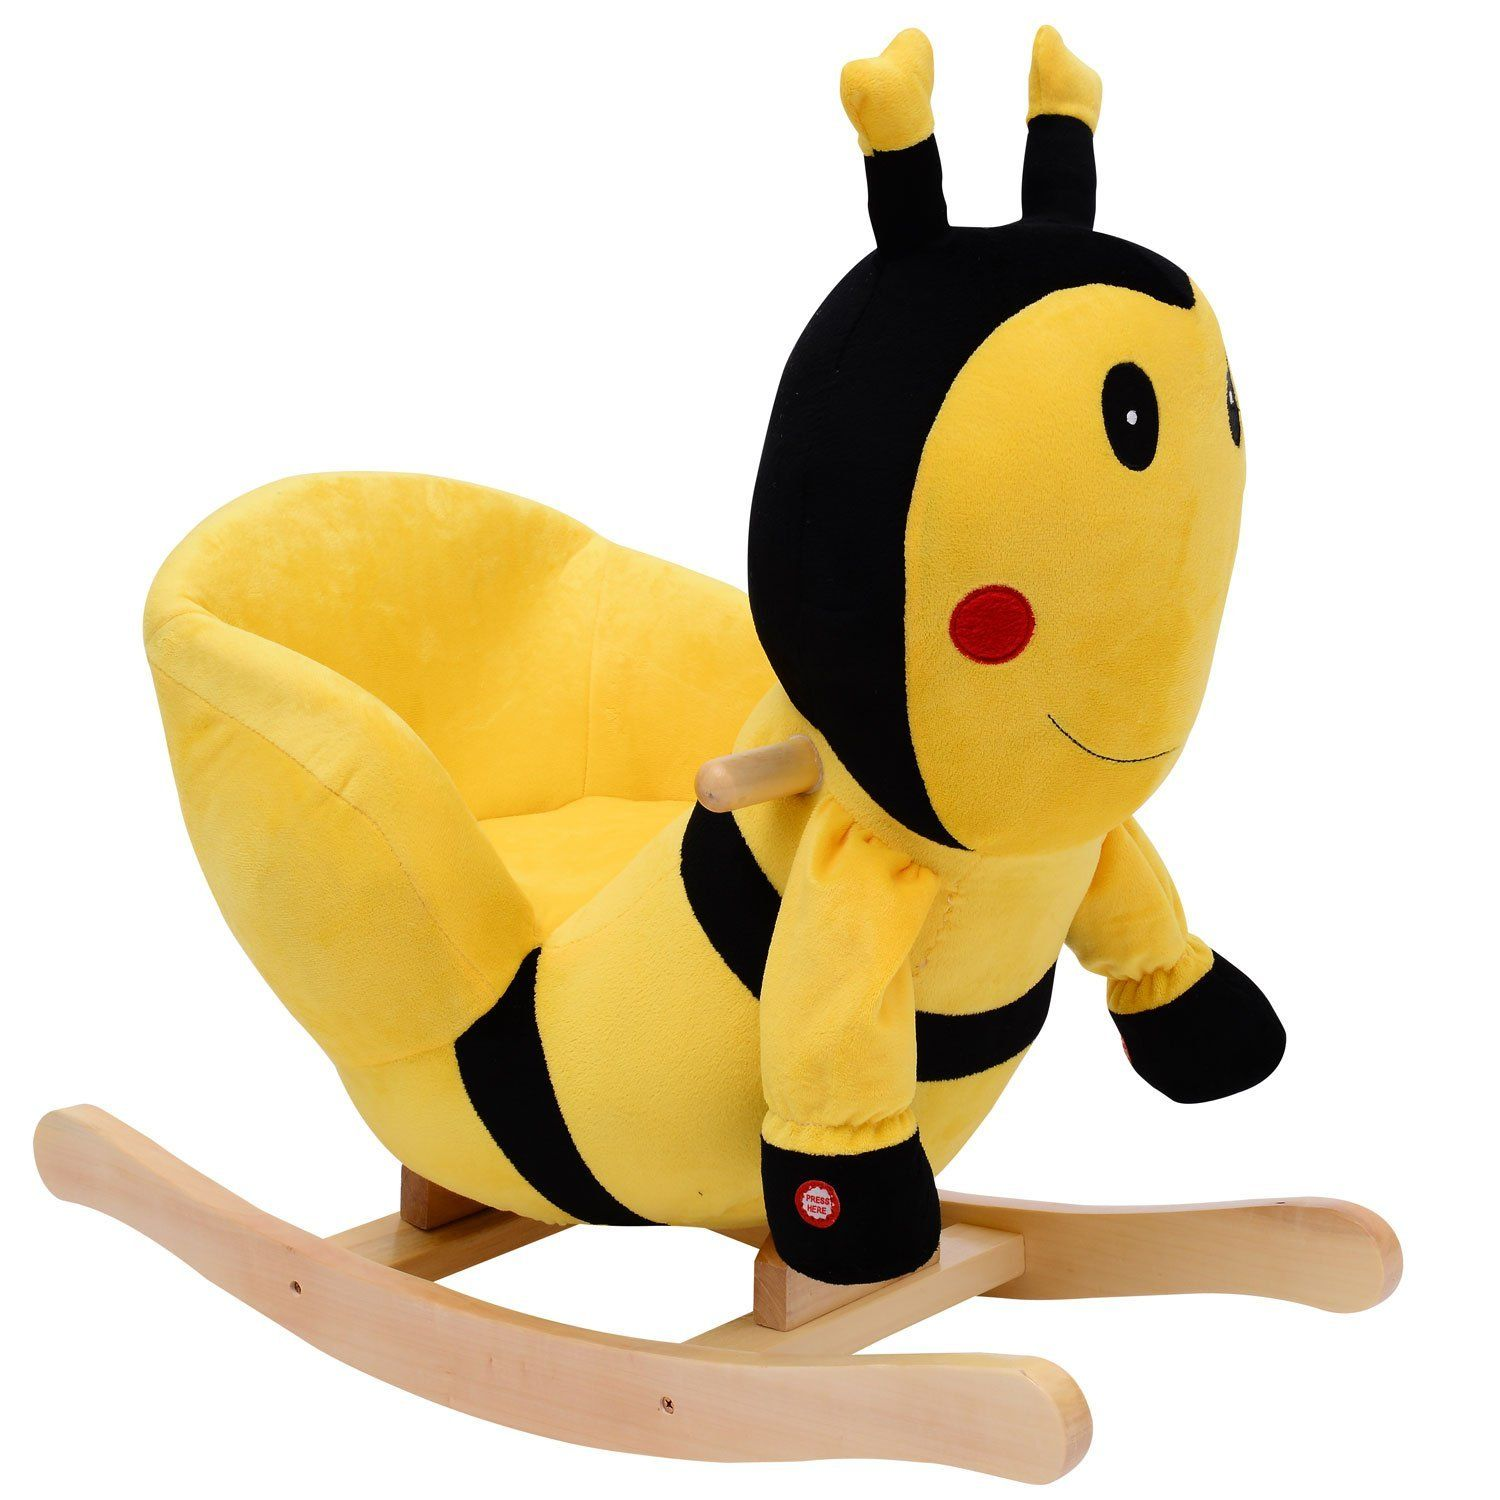 1000 images about girly toys on pinterest rocking horses bumble bees and plush baby nursery cool bee animal rocking horse